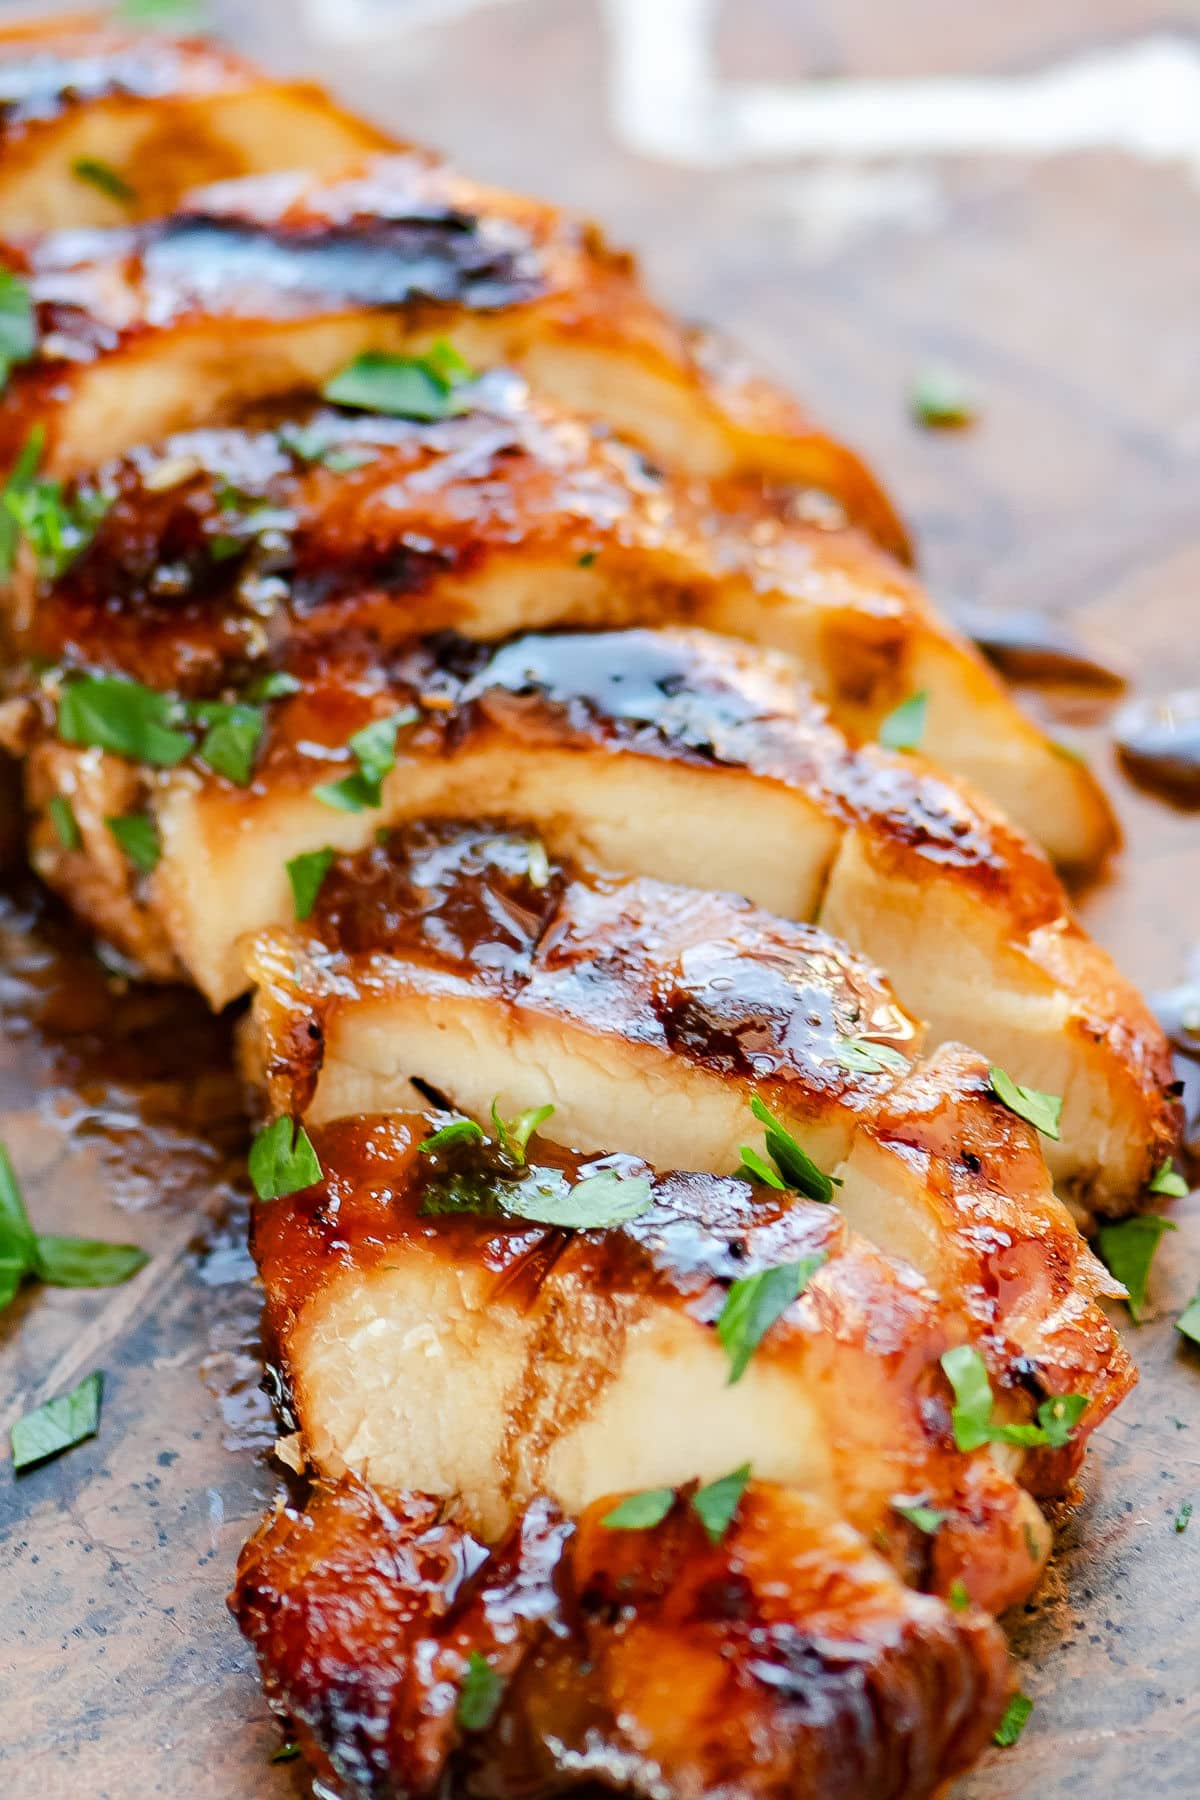 delicious chicken breast that has been grilled after being marinated for hours. Topped with fresh parsley.